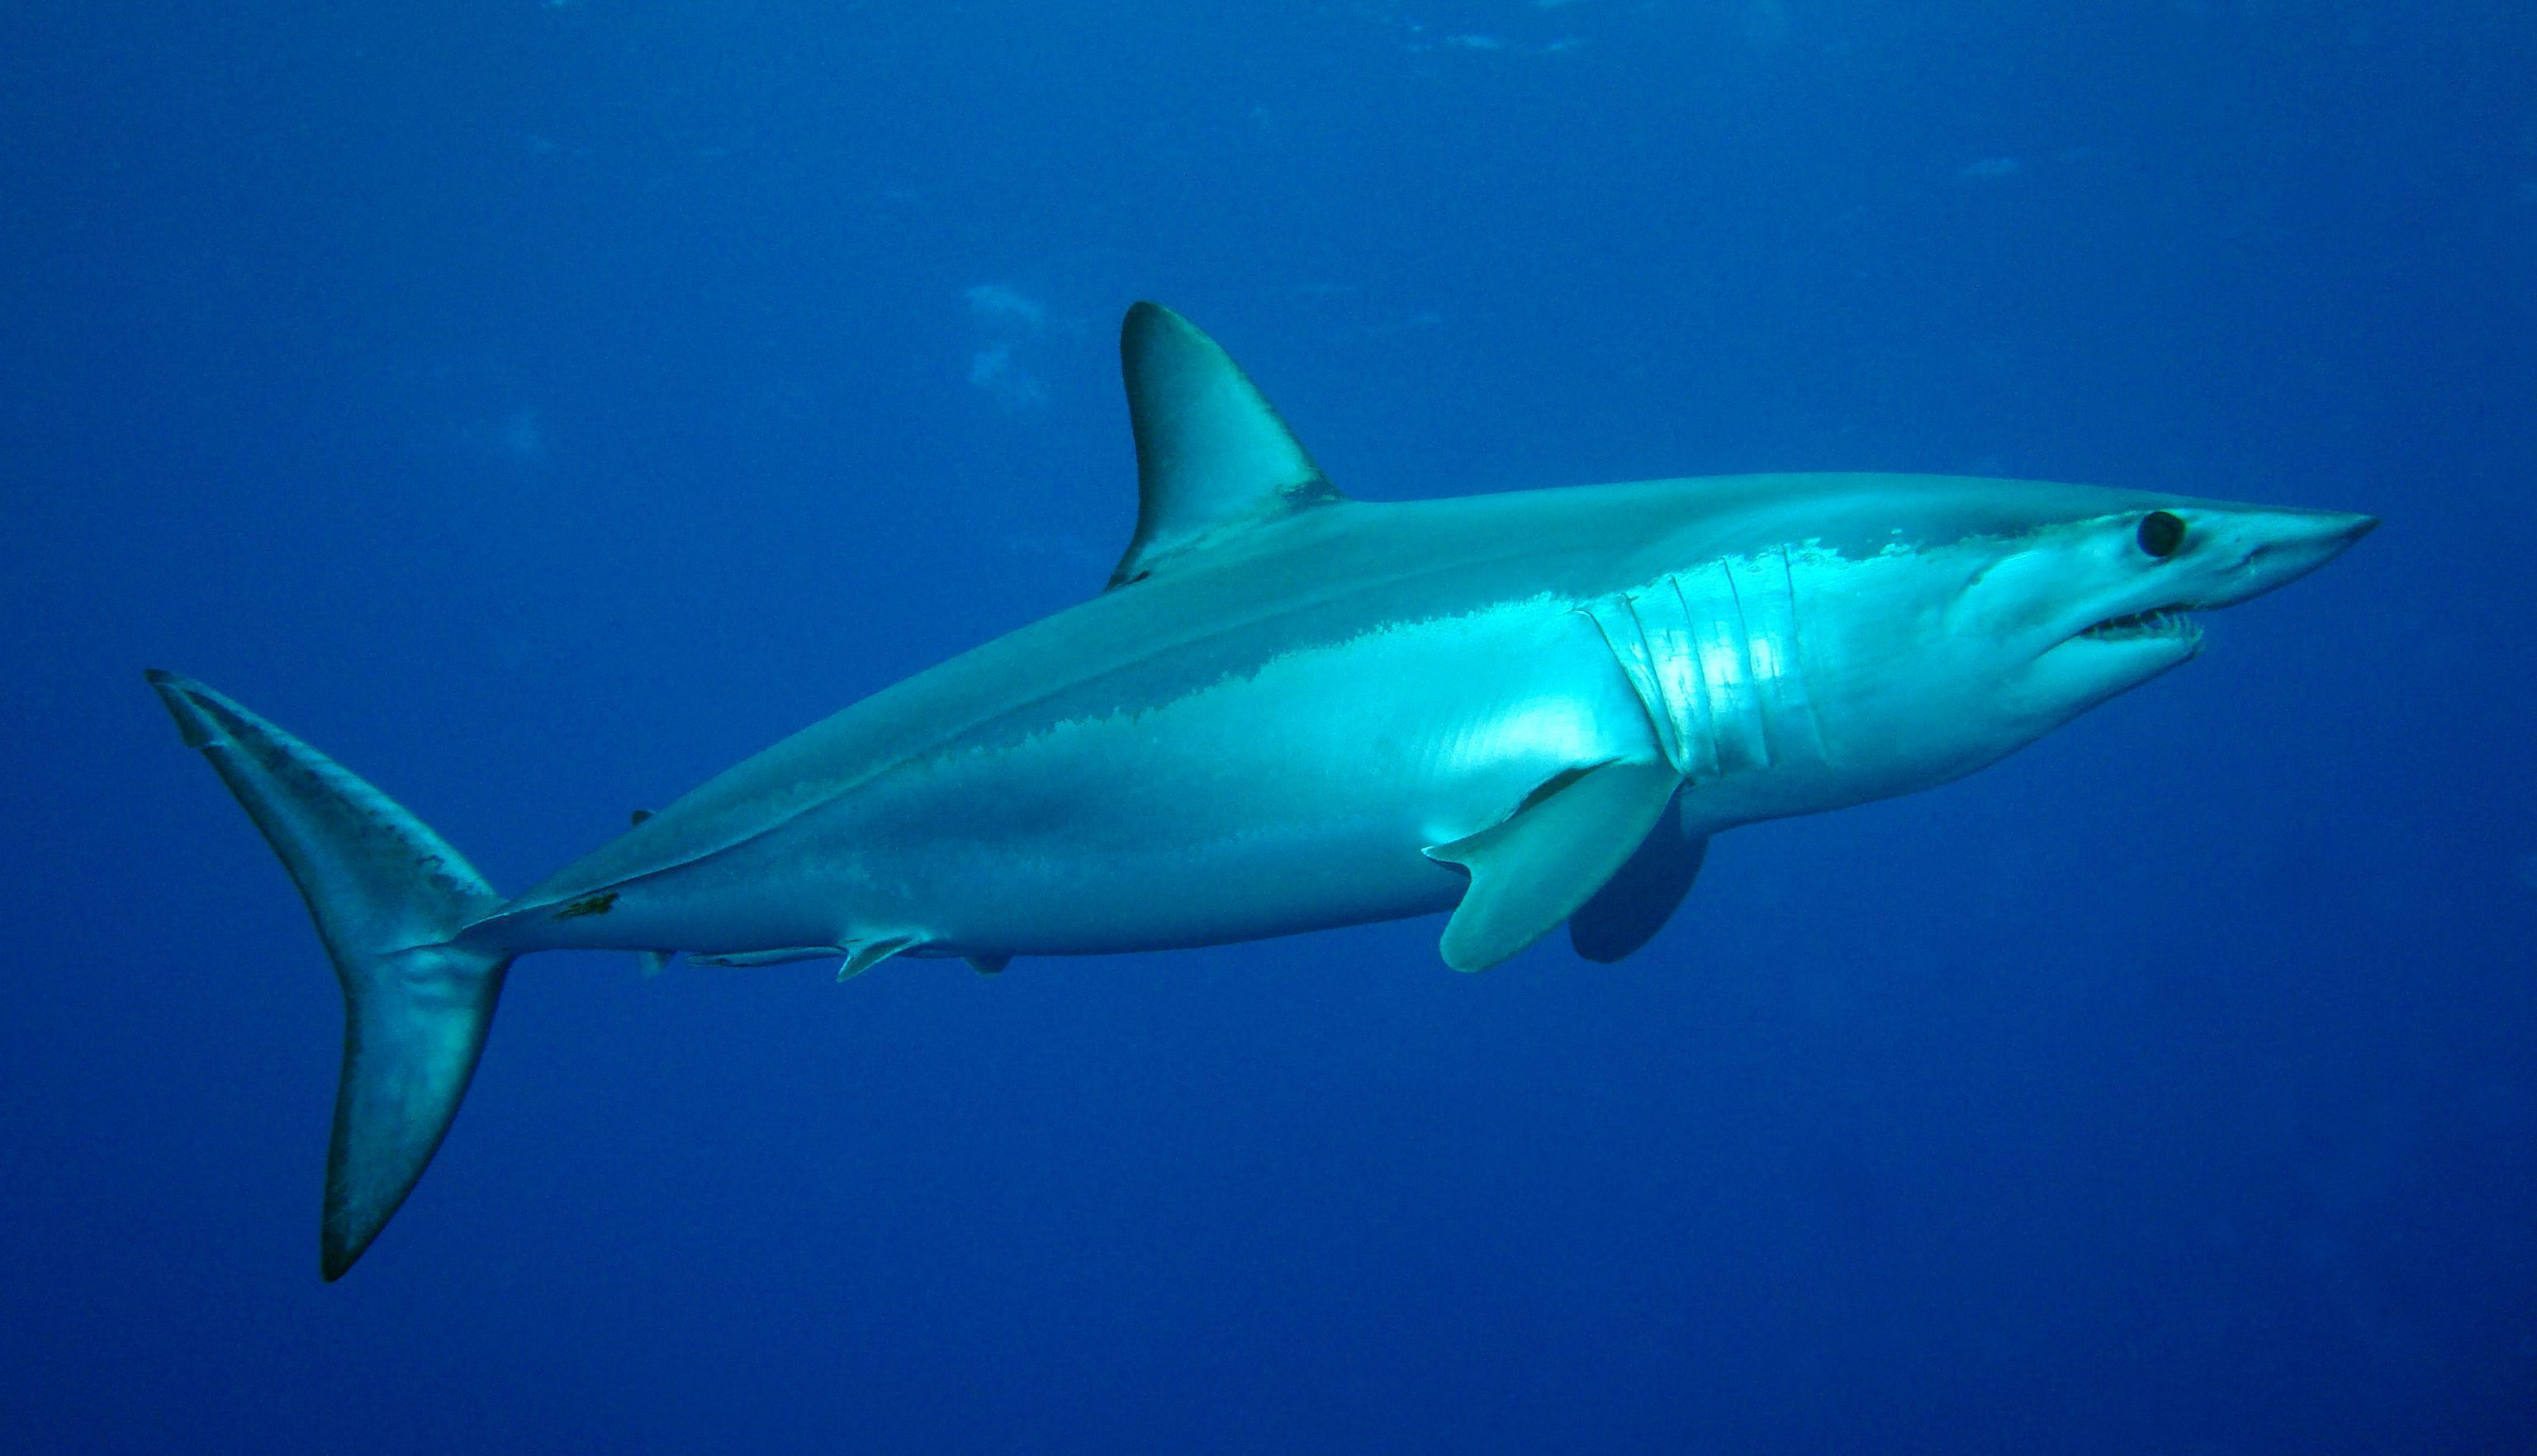 Mako Shark Wallpapers HD. Mako Shark Wallpapers Shortfin